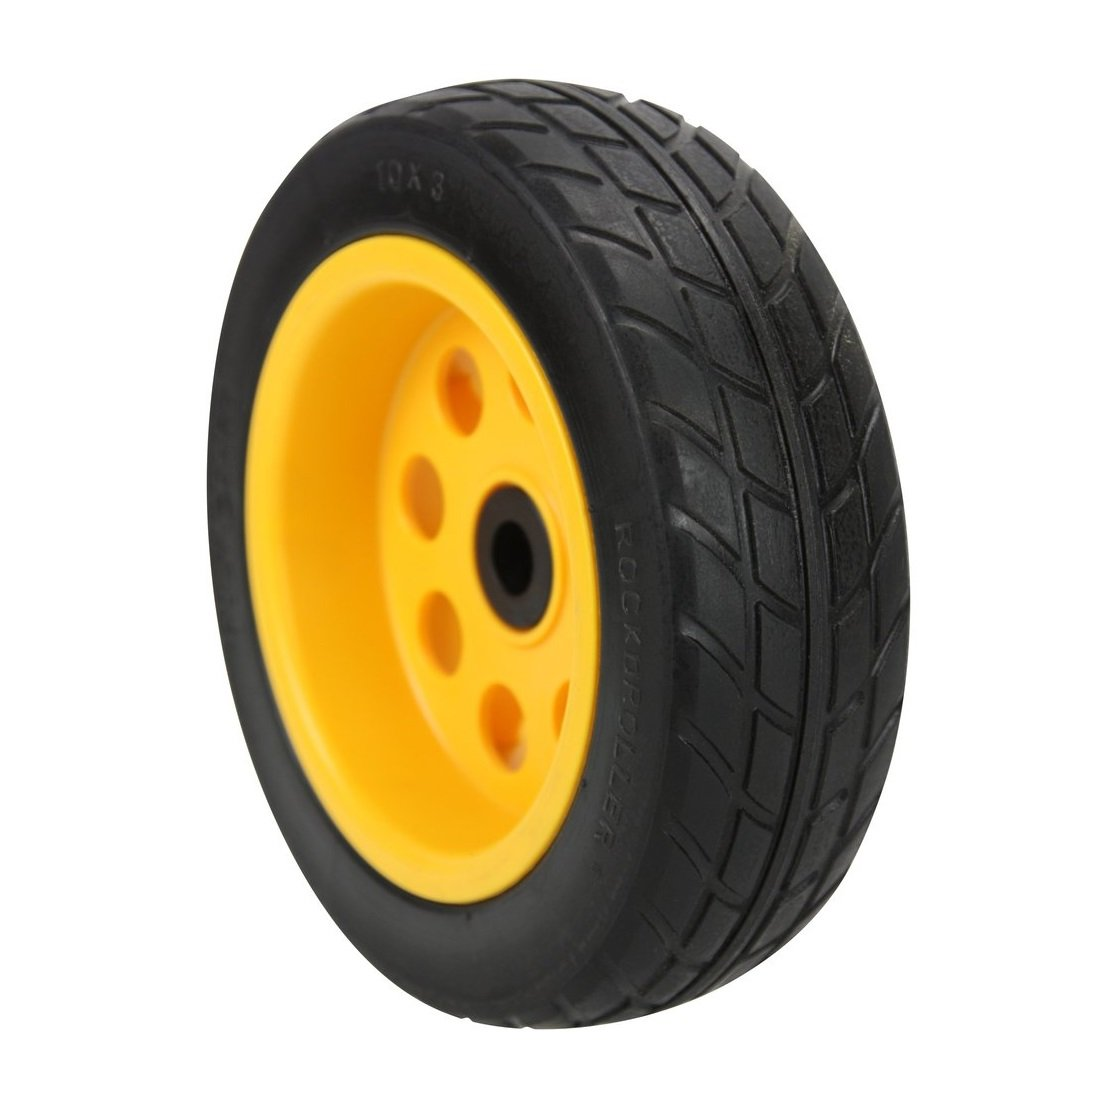 Rock N Roller R10WHL/RT/O R-Trac Wheel for R10 and R12 Carts